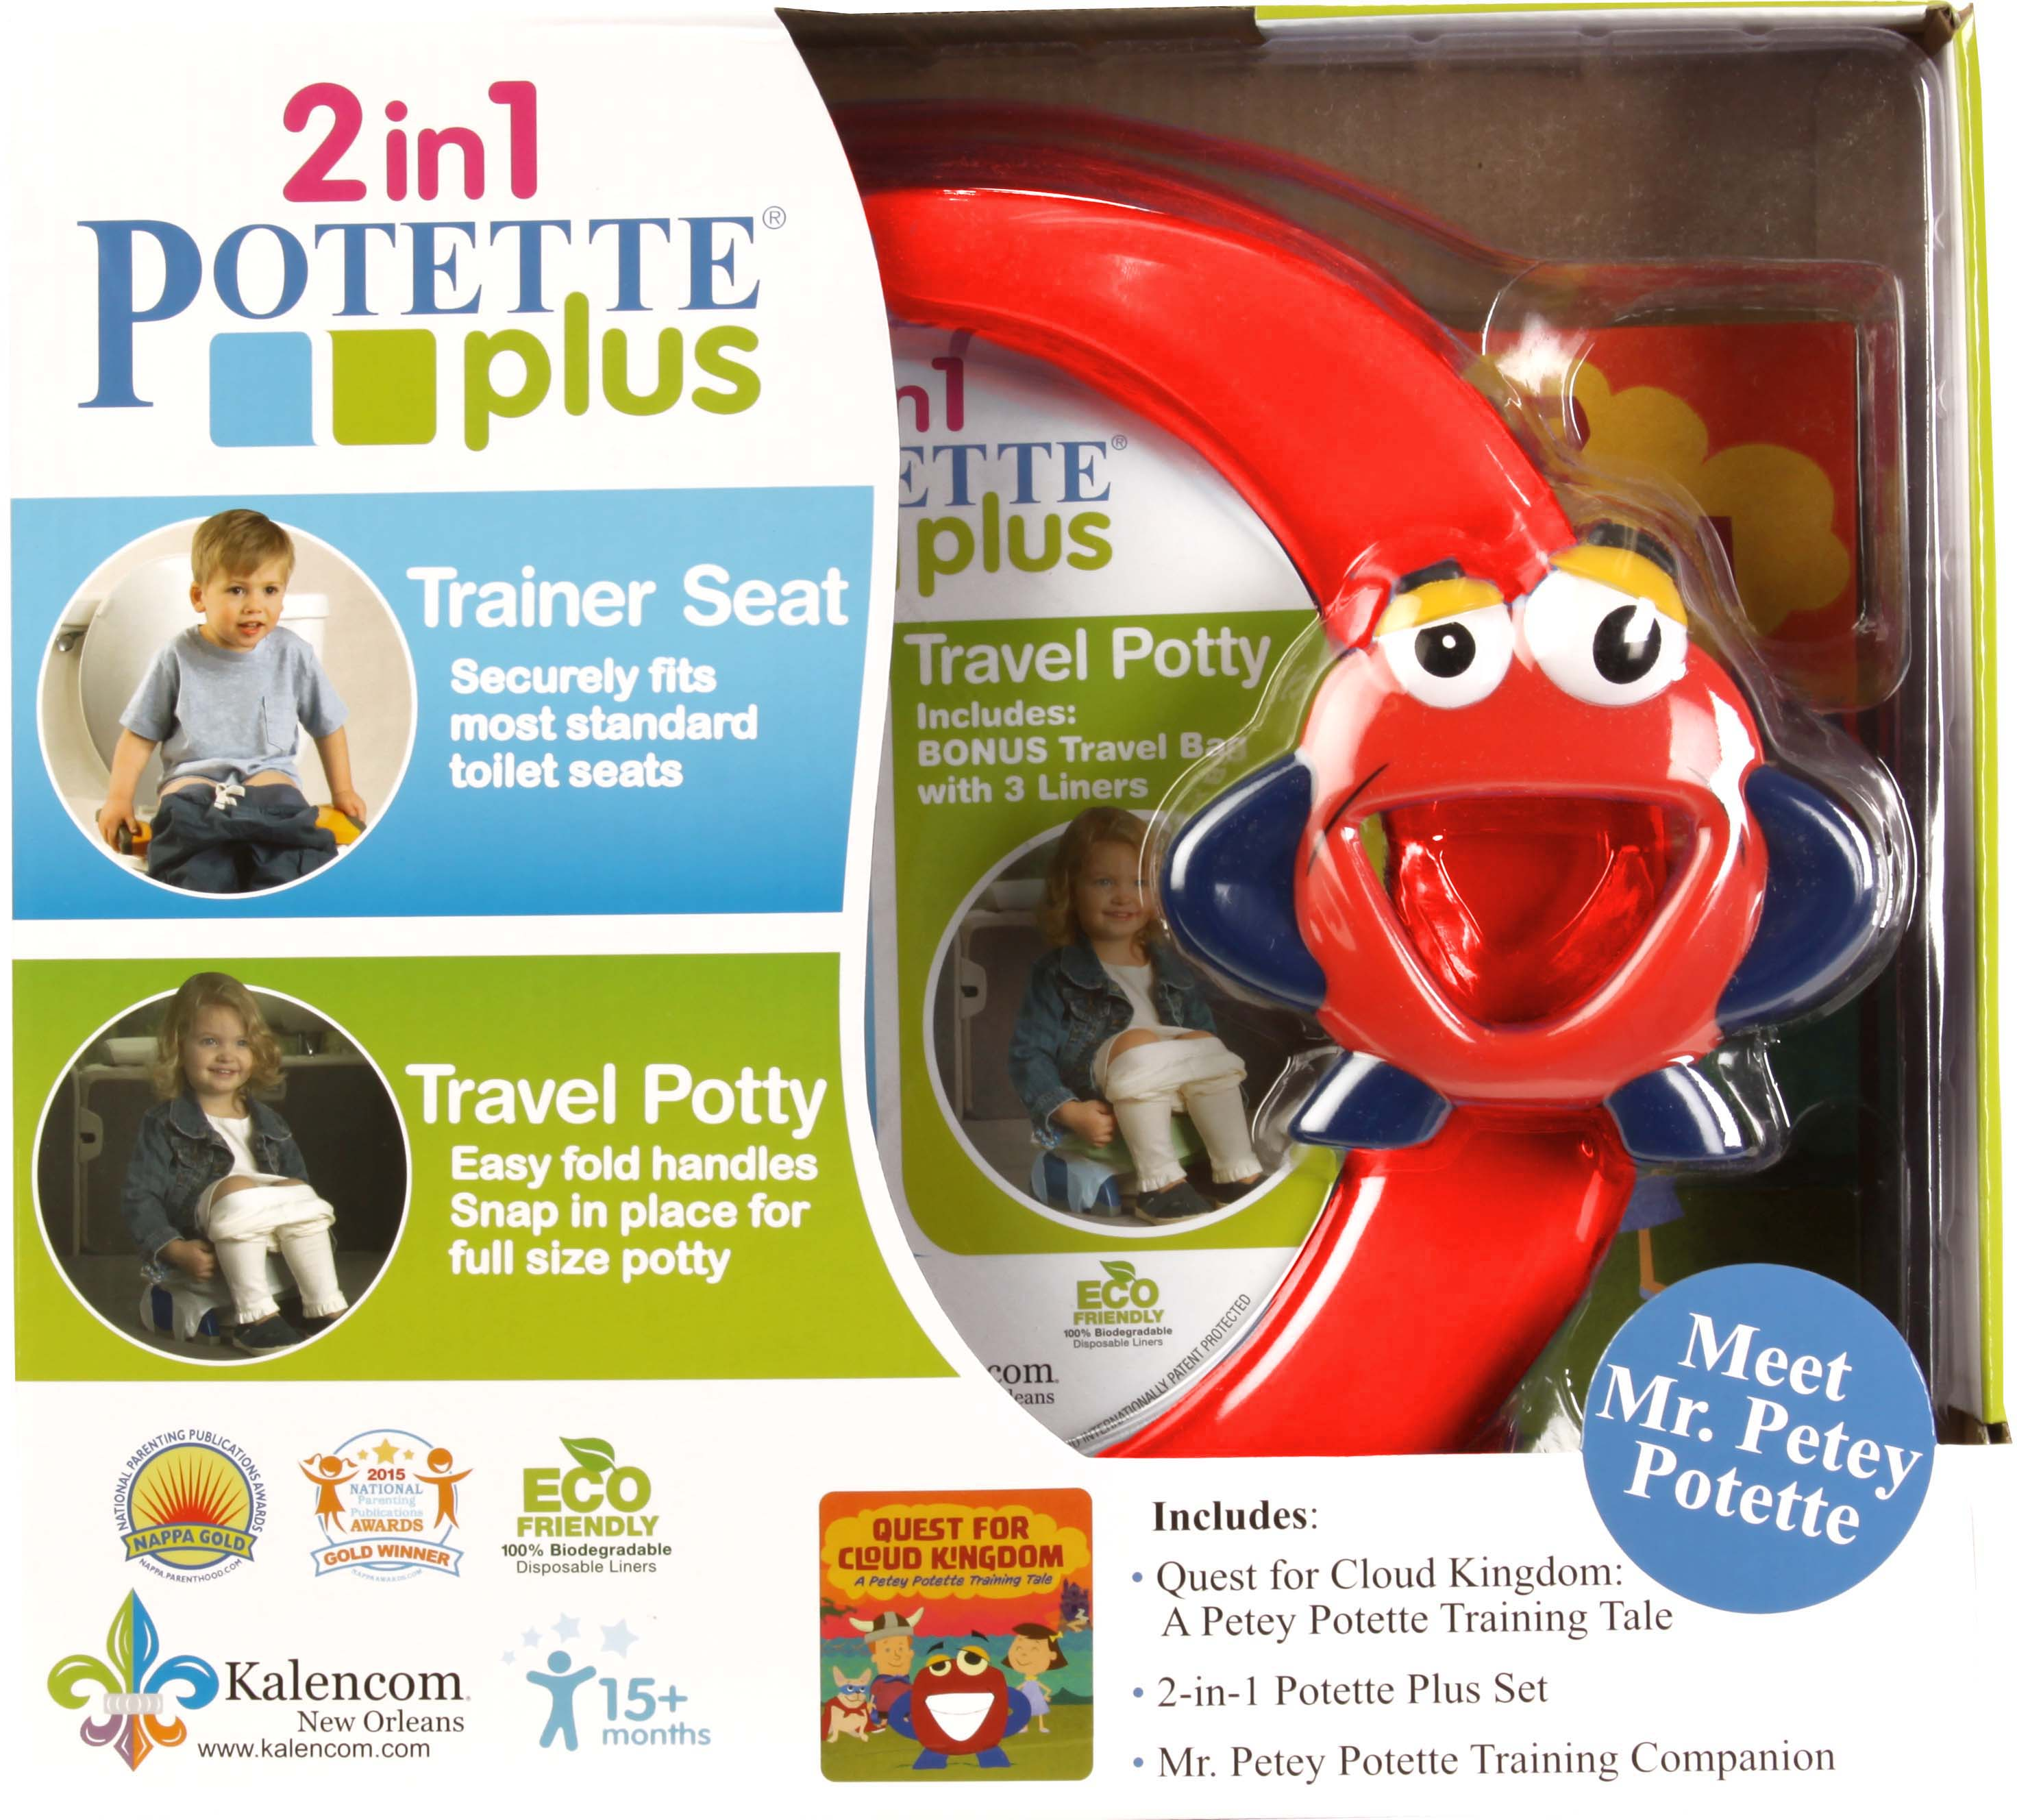 MR. PETEY POTETTE POTTY TRAINING KIT